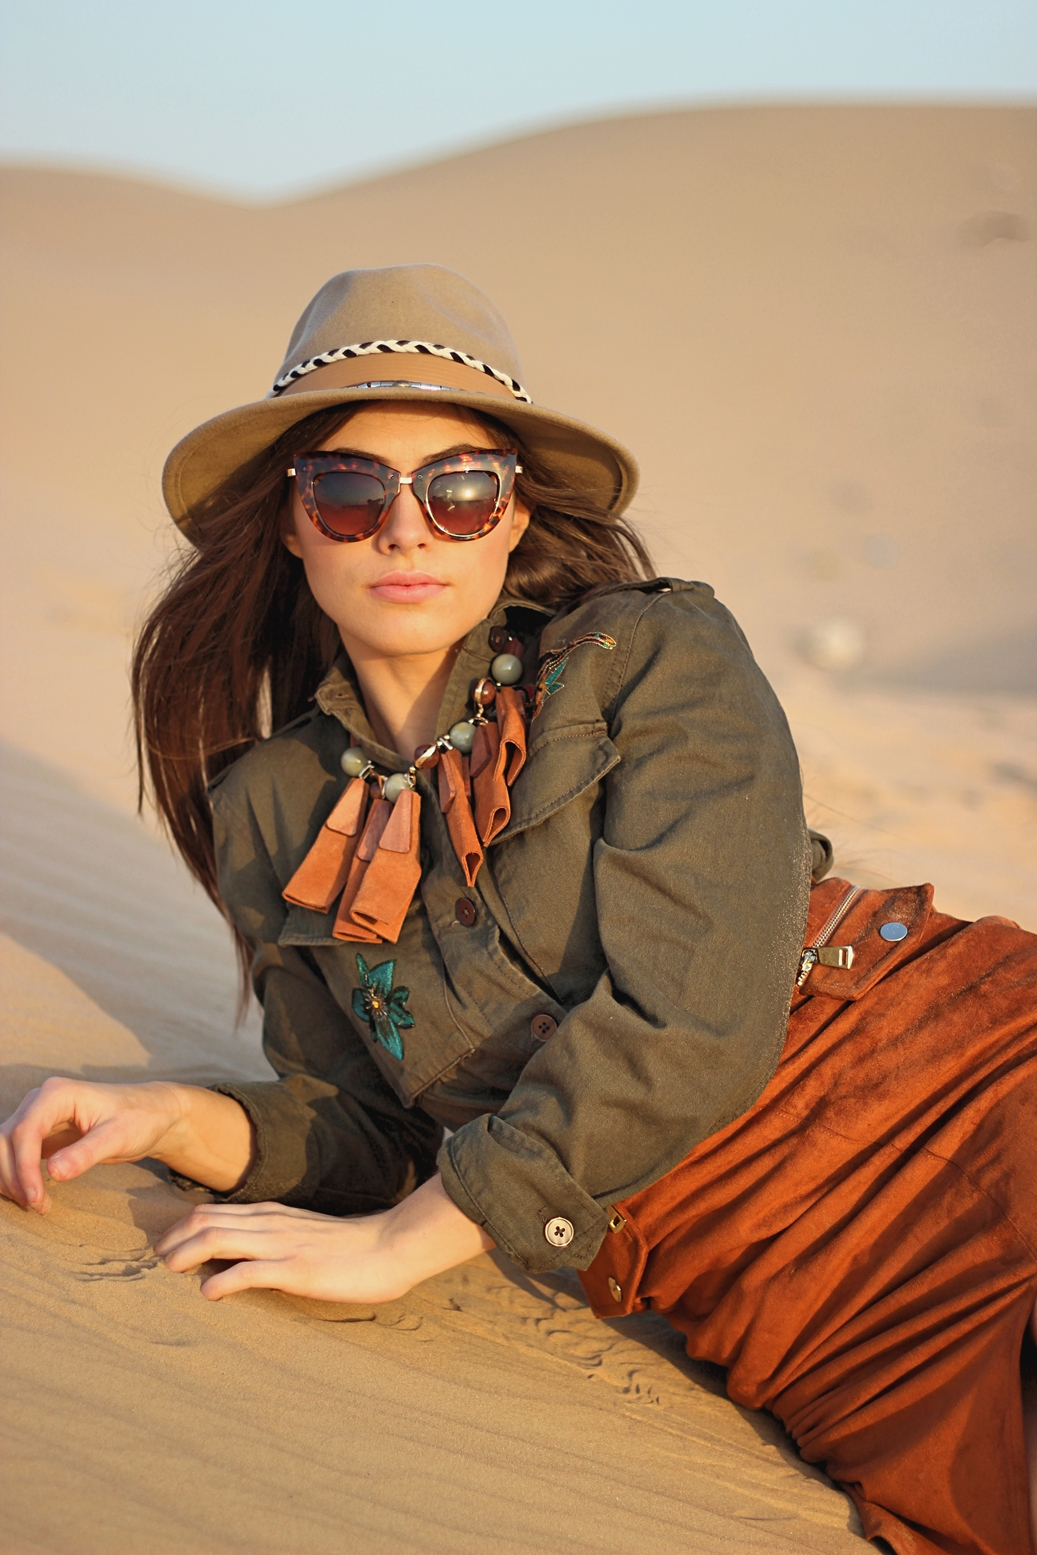 dubai-travel-desert-outfit-photoshoot (2)